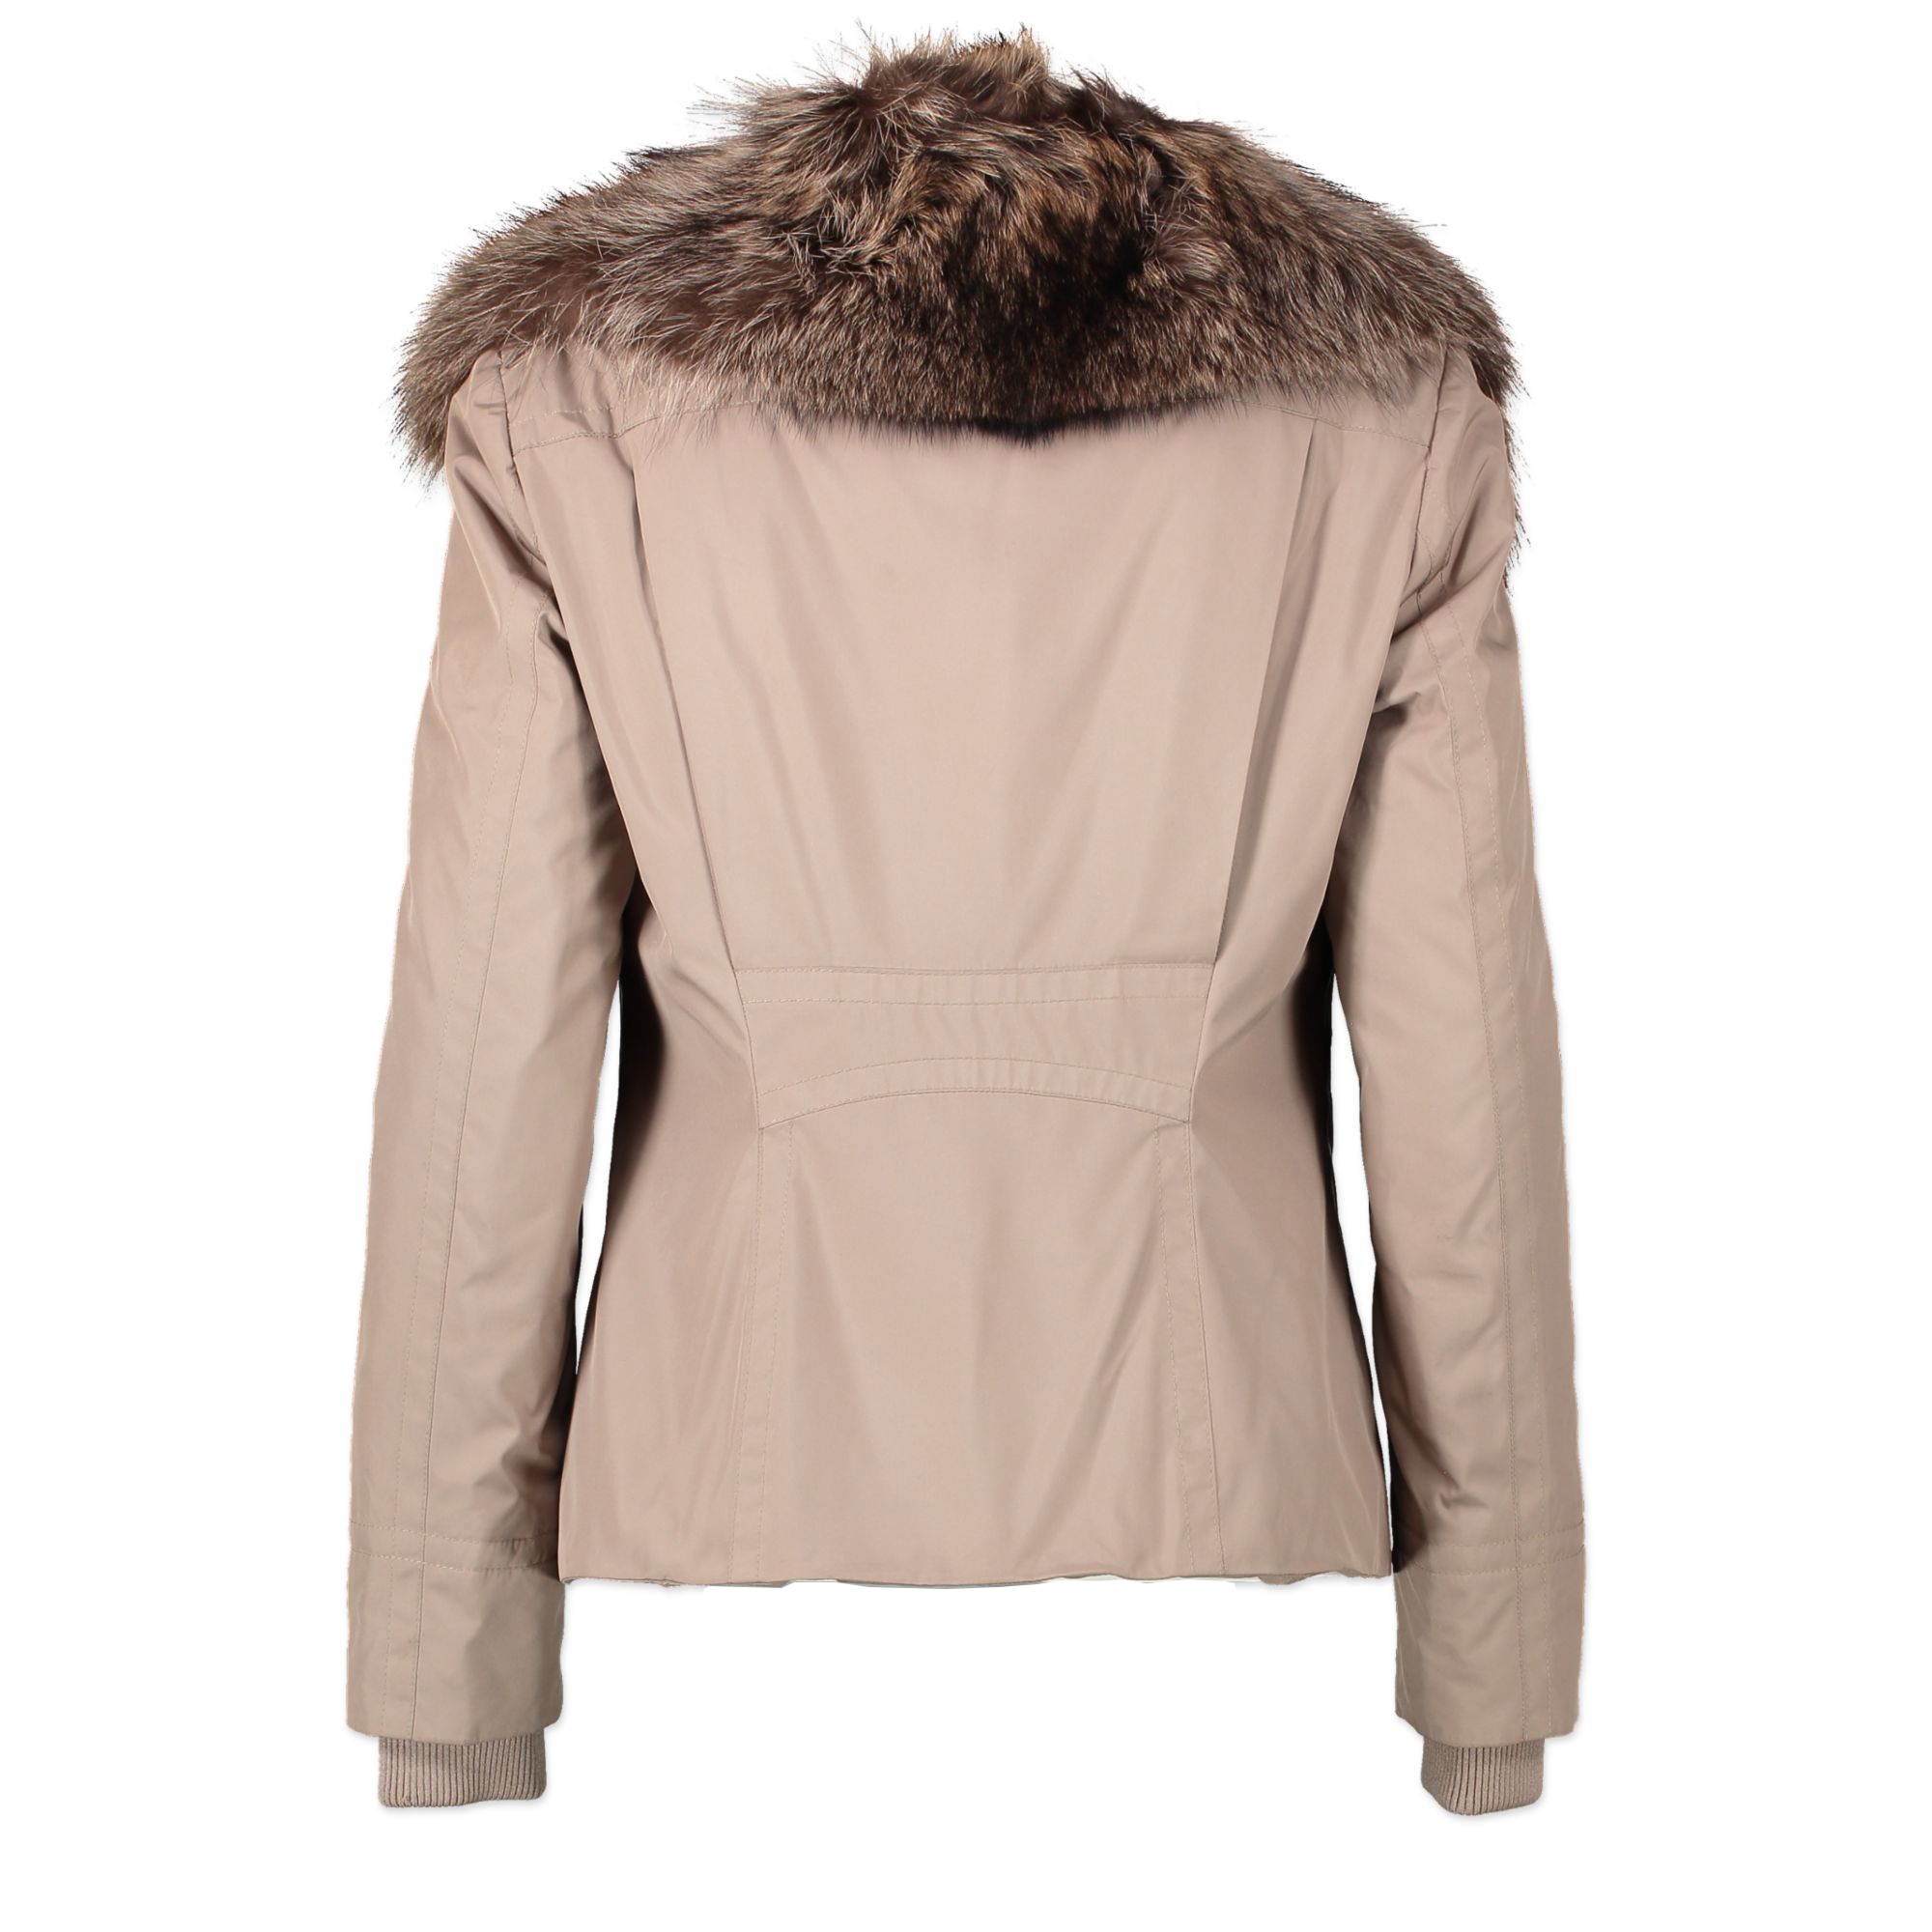 Gucci Beige Fur Collar Jacket - te koop bij Labellov